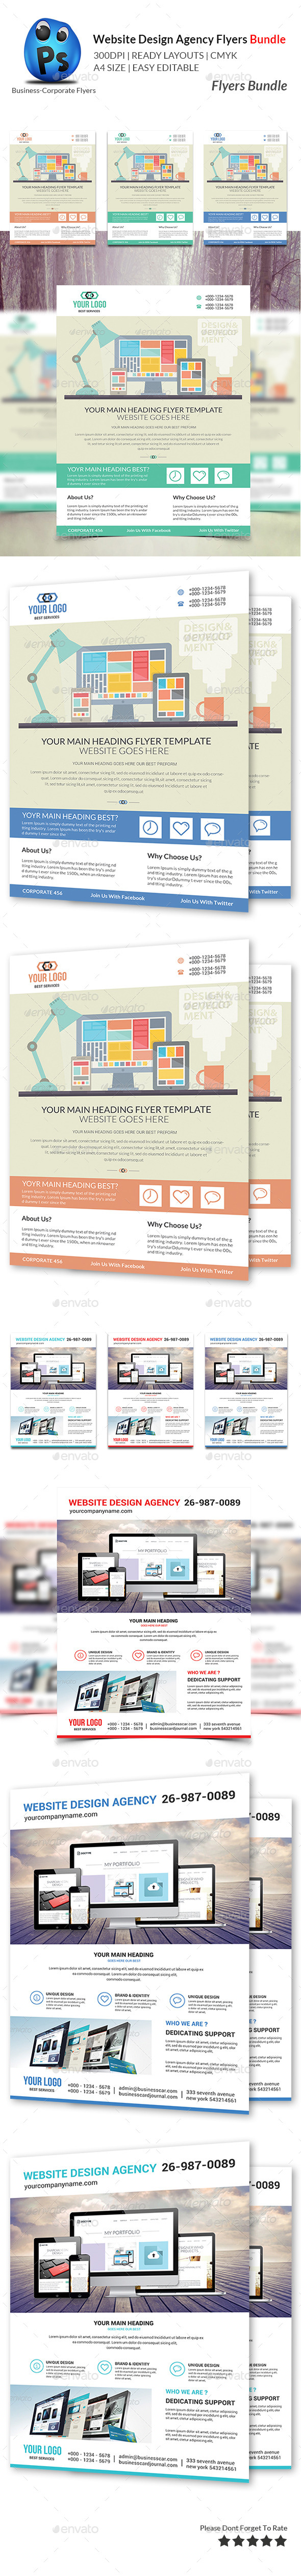 GraphicRiver Website Design Agency Bundle 10756384